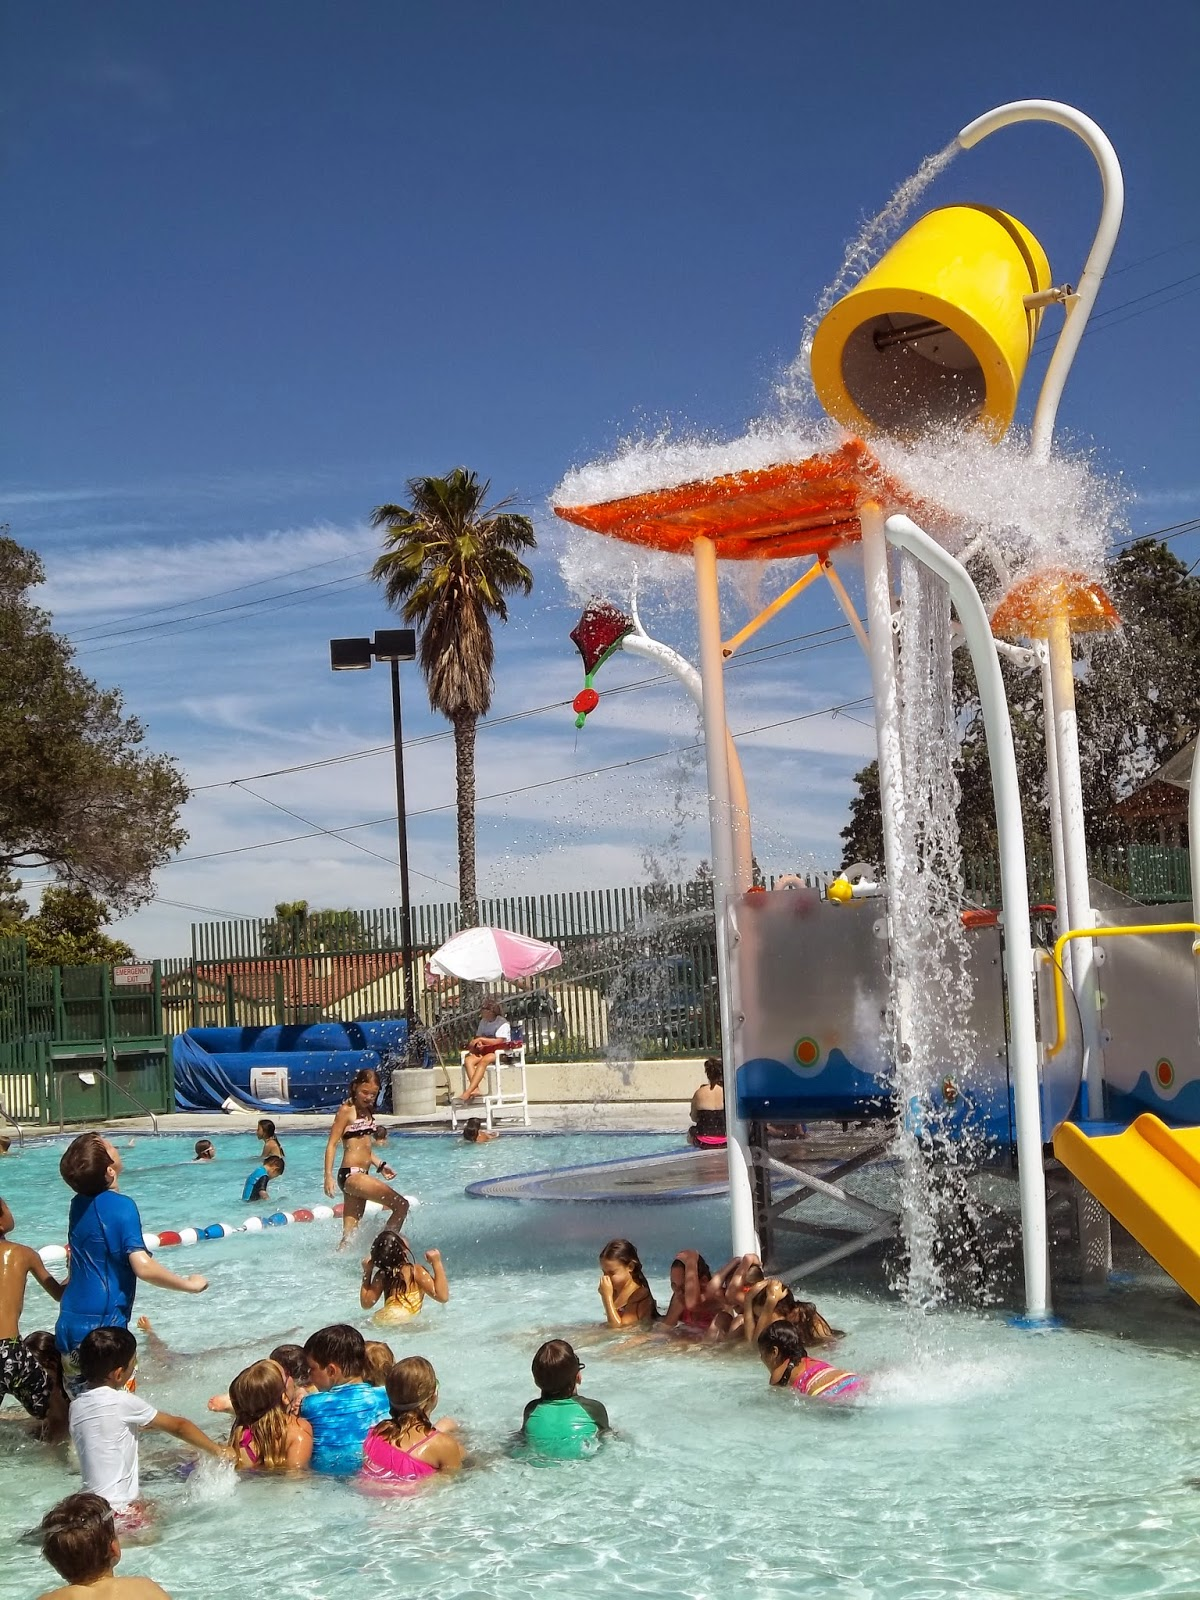 The lemon lady foundation free things to do with kids in - Free public swimming pools near me ...